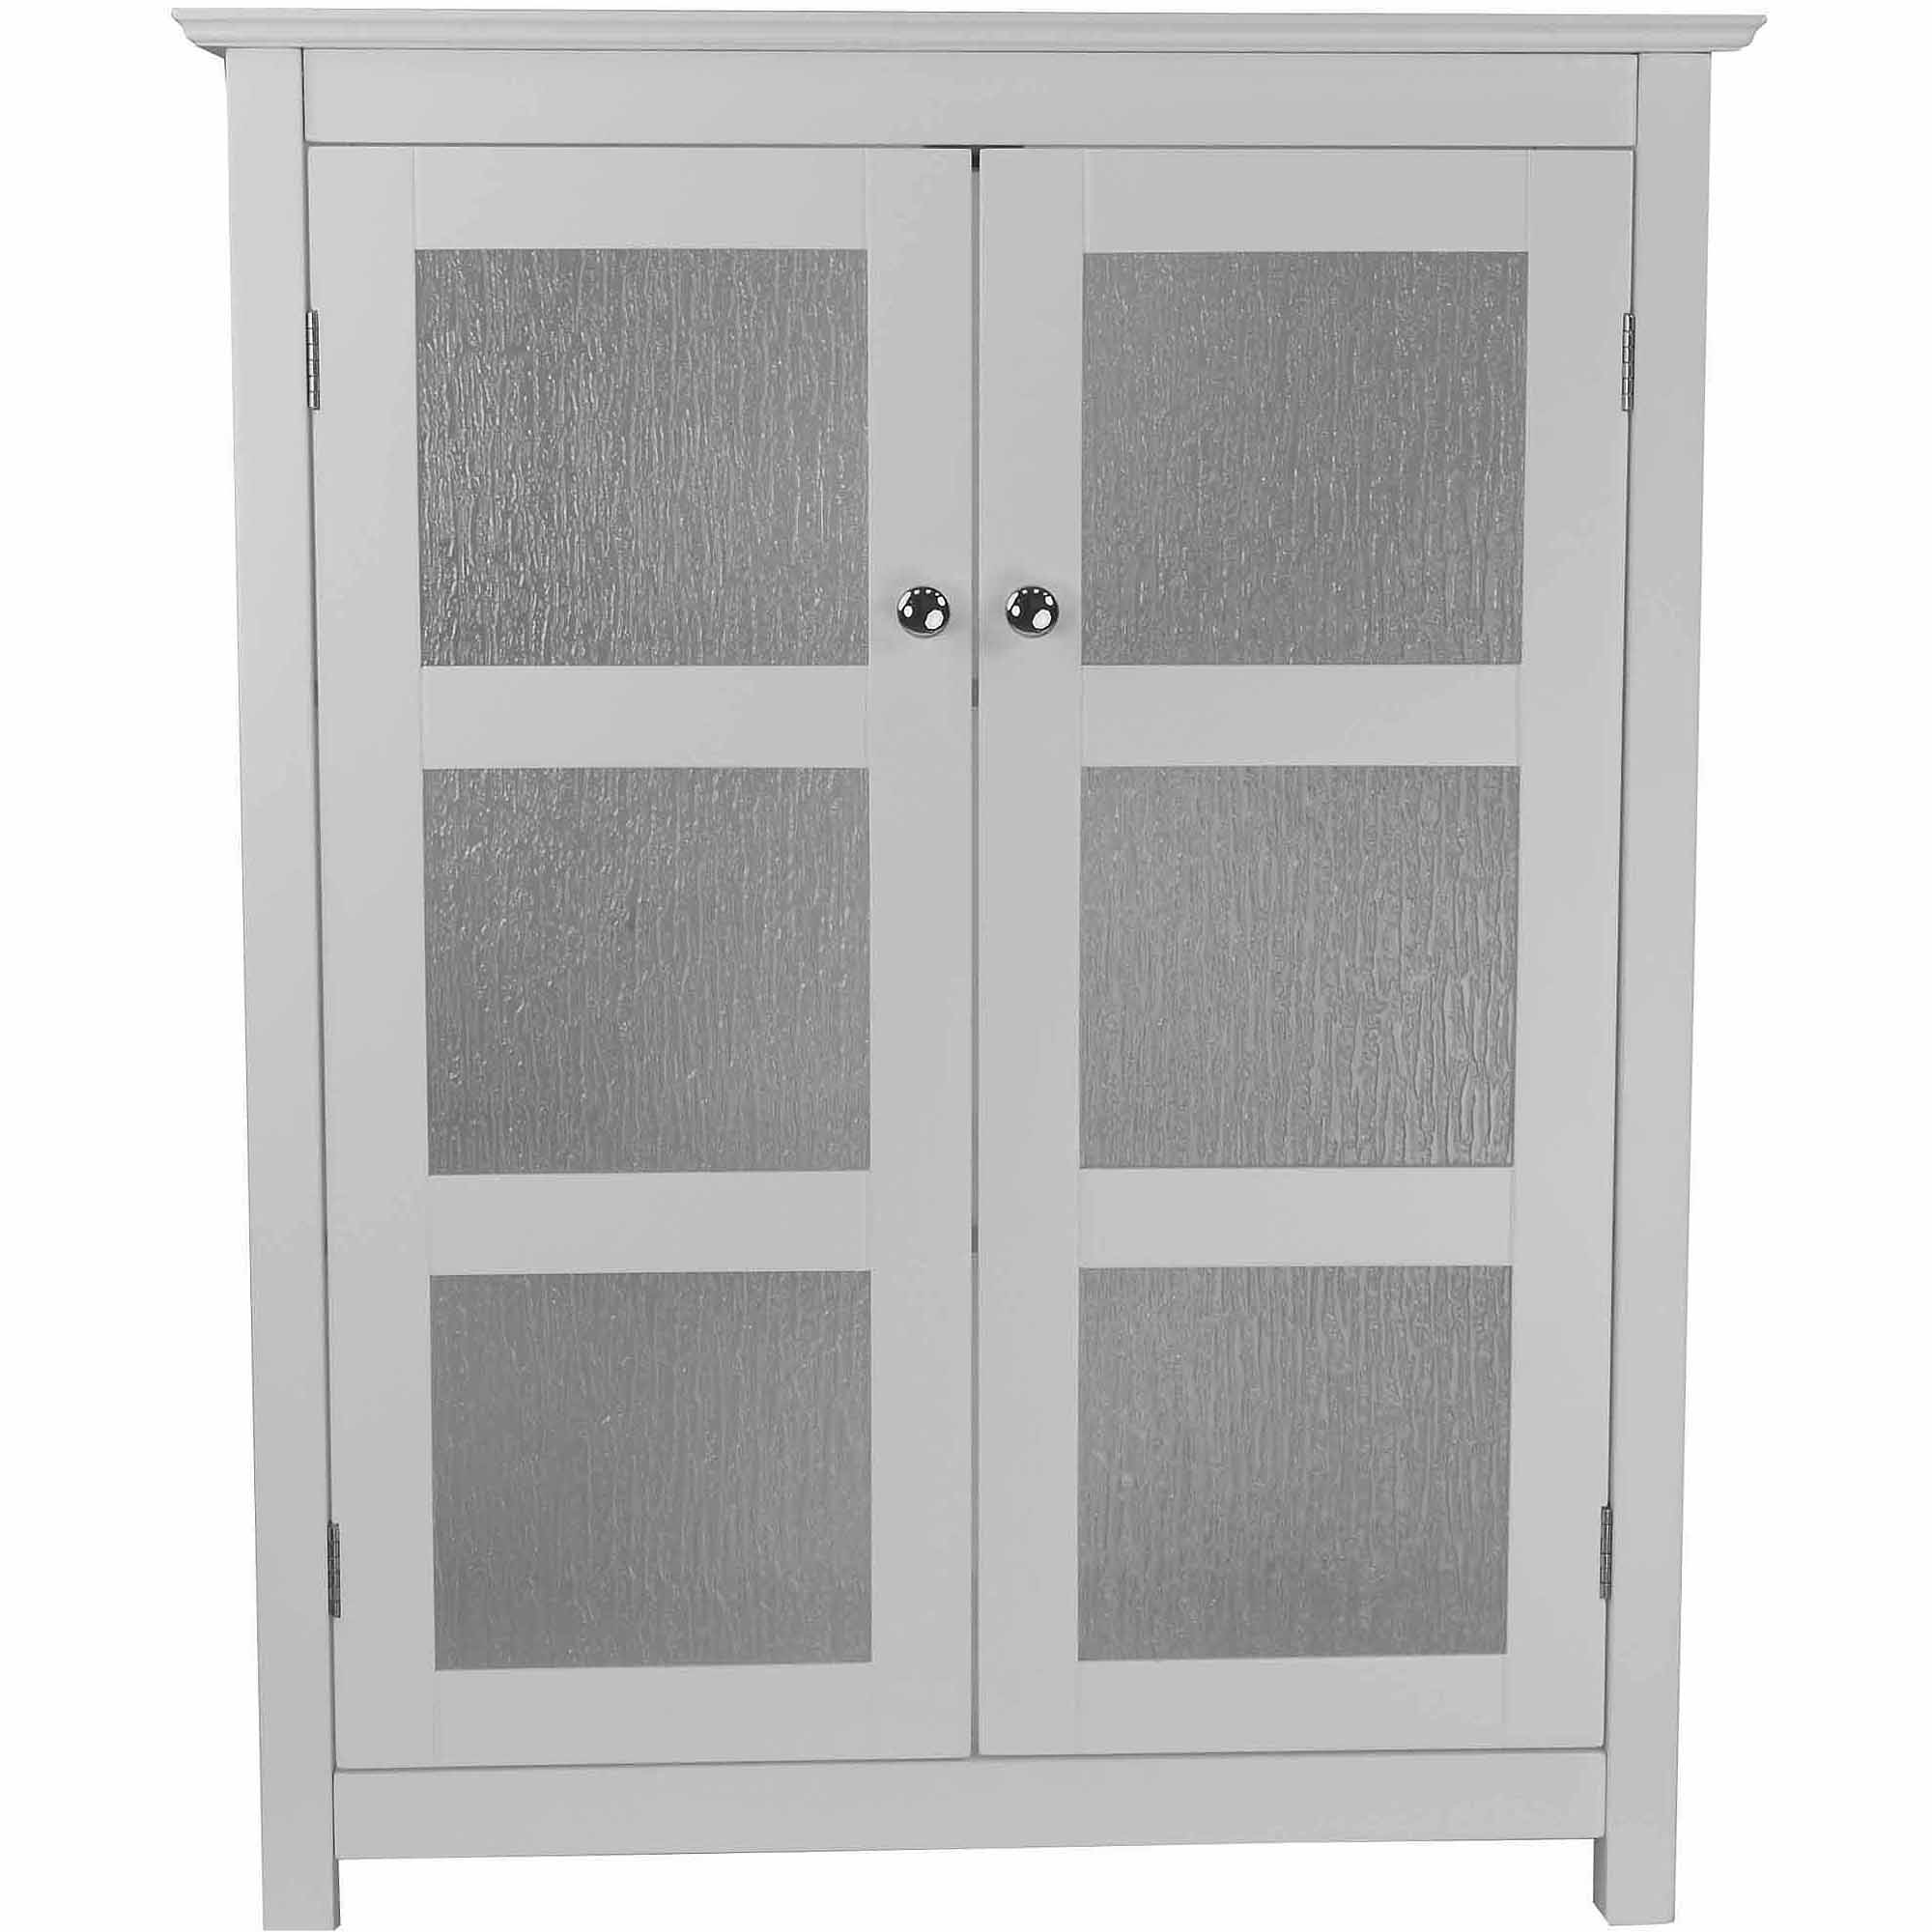 Connor floor cabinet with 2 glass doors white walmart com